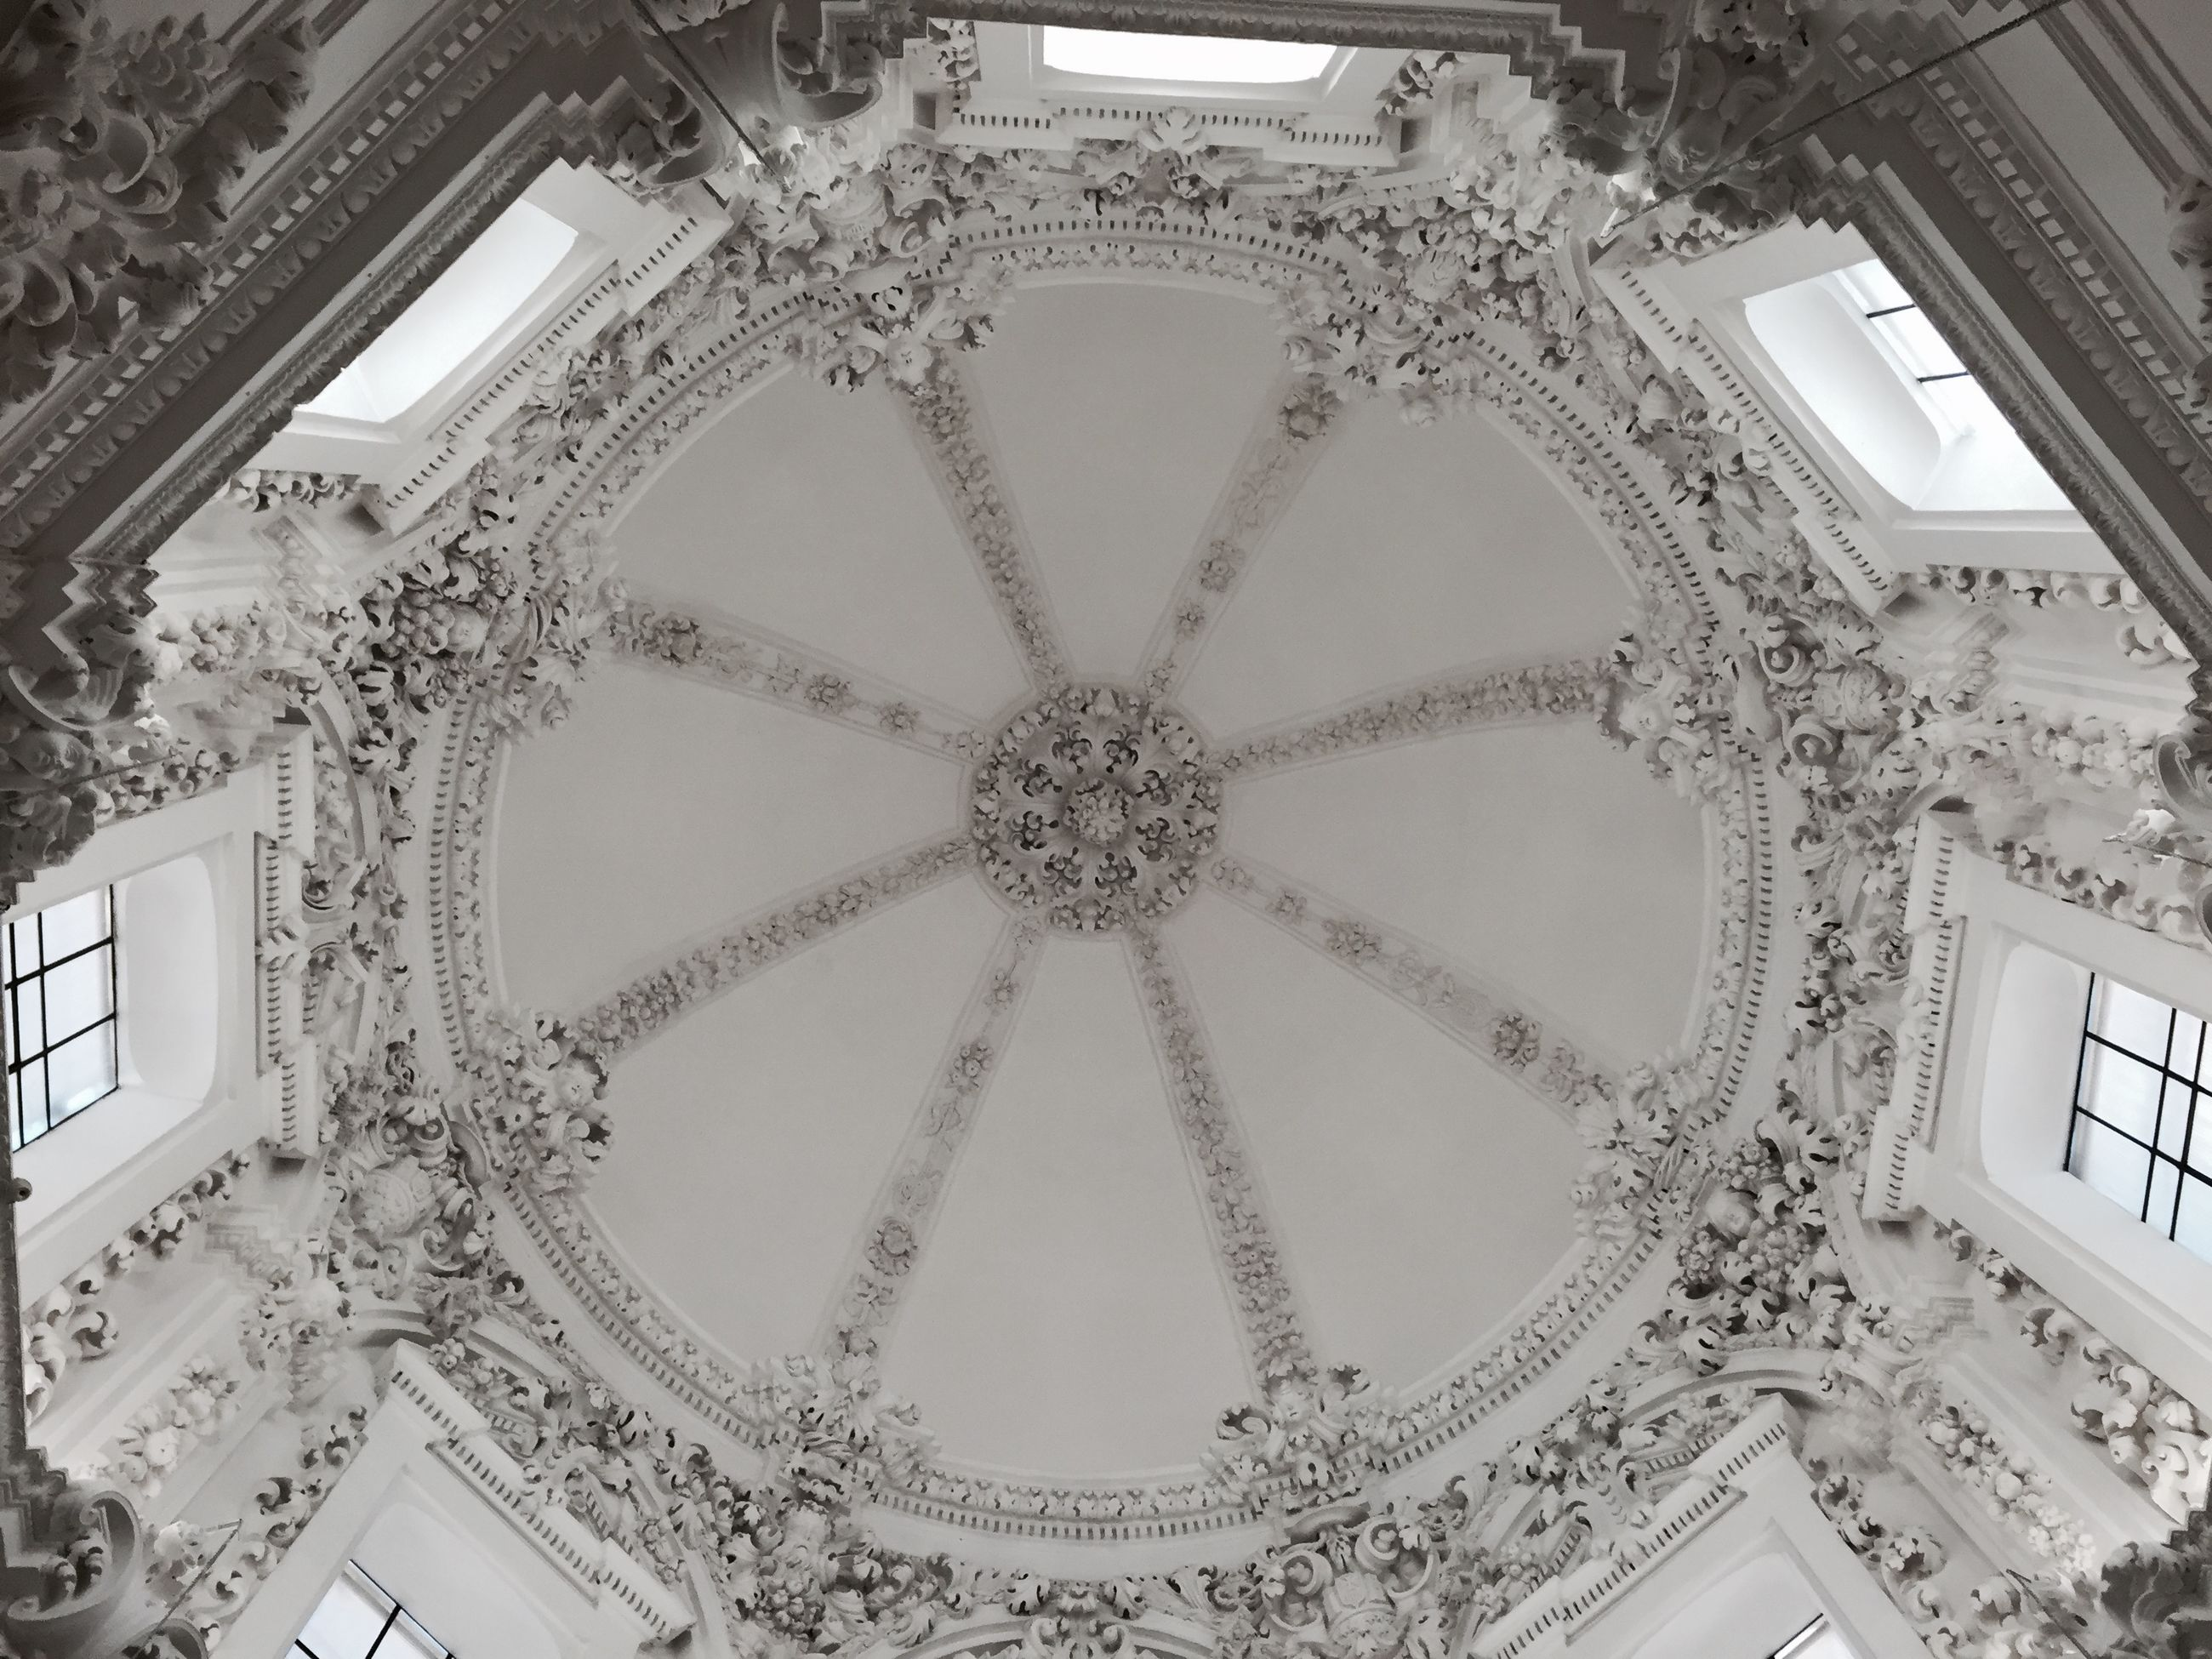 architecture, built structure, indoors, ceiling, famous place, design, low angle view, ornate, architectural feature, travel destinations, pattern, art and craft, building exterior, international landmark, art, capital cities, tourism, circle, creativity, travel